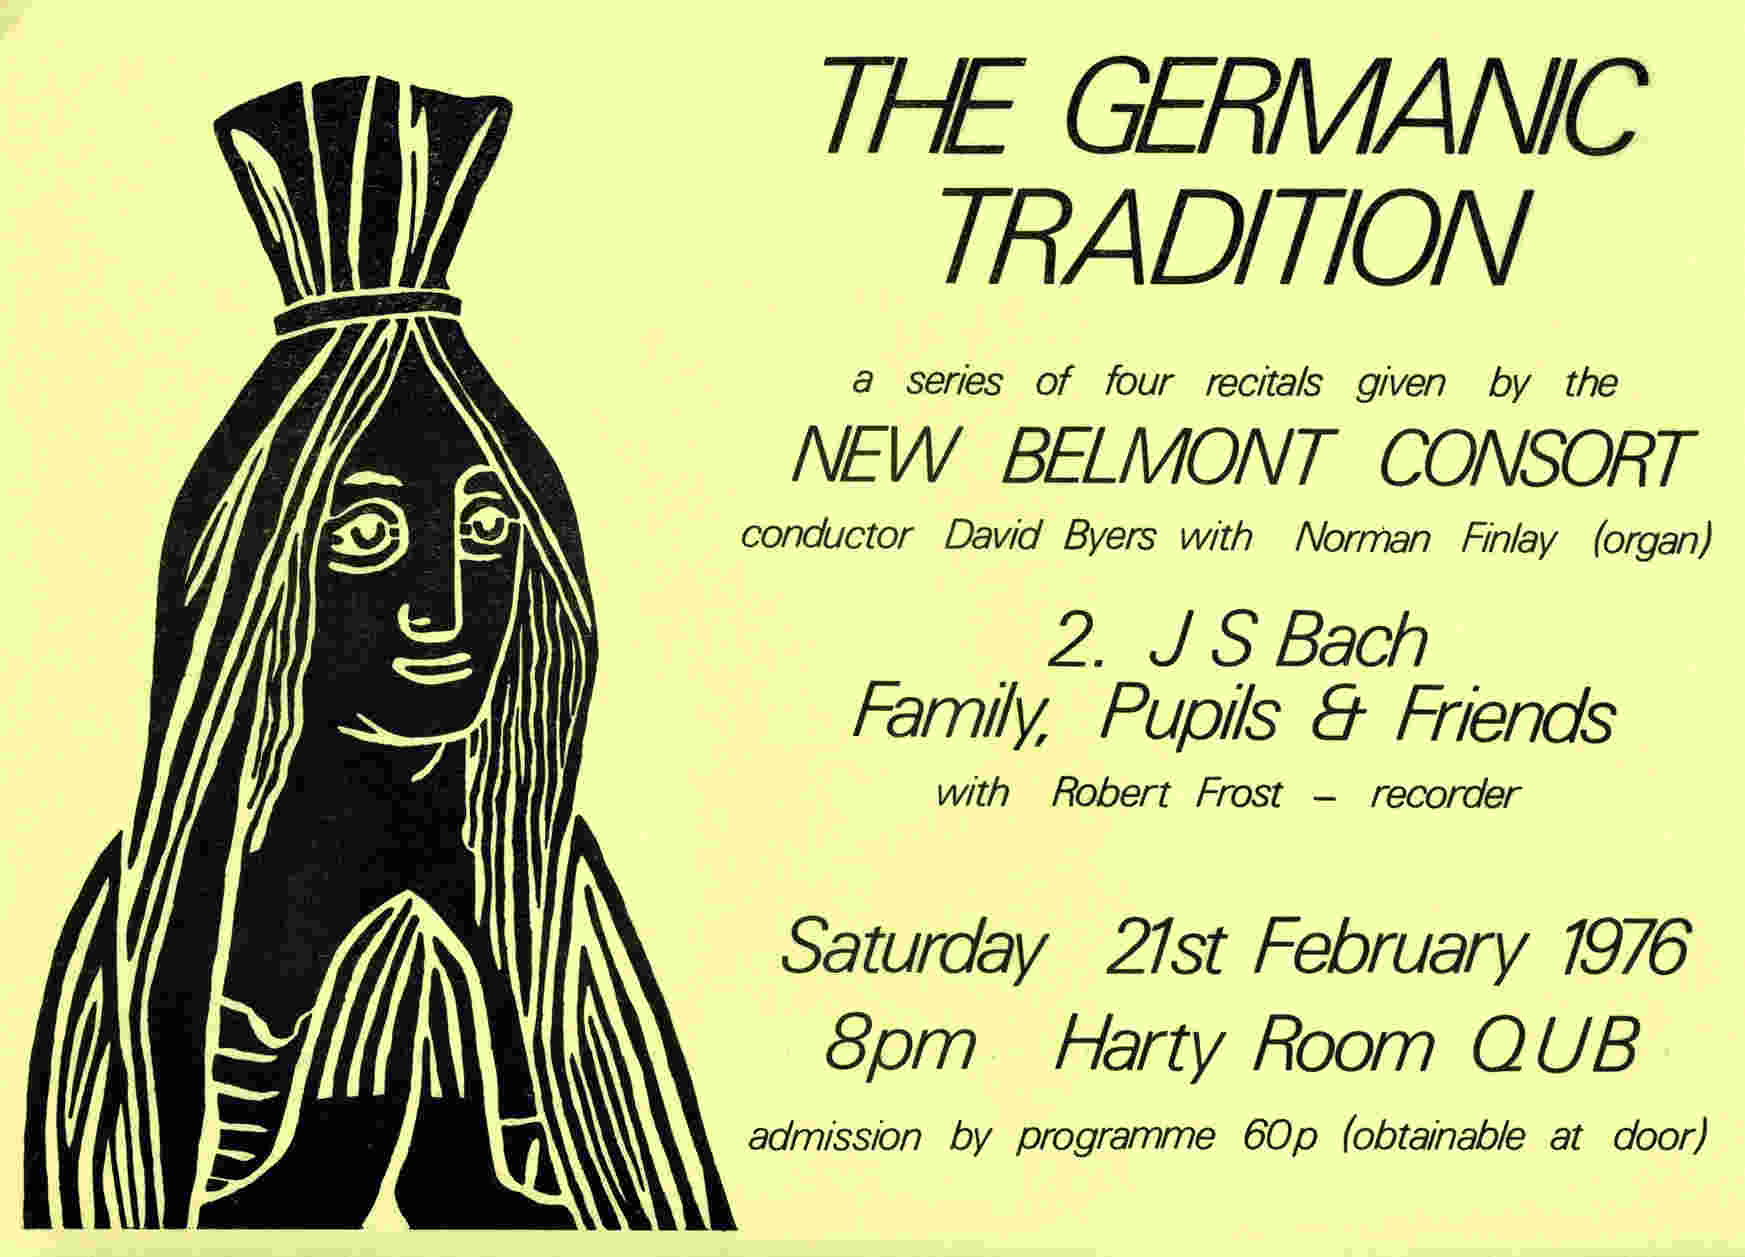 New Belmont Consort Germanic 2